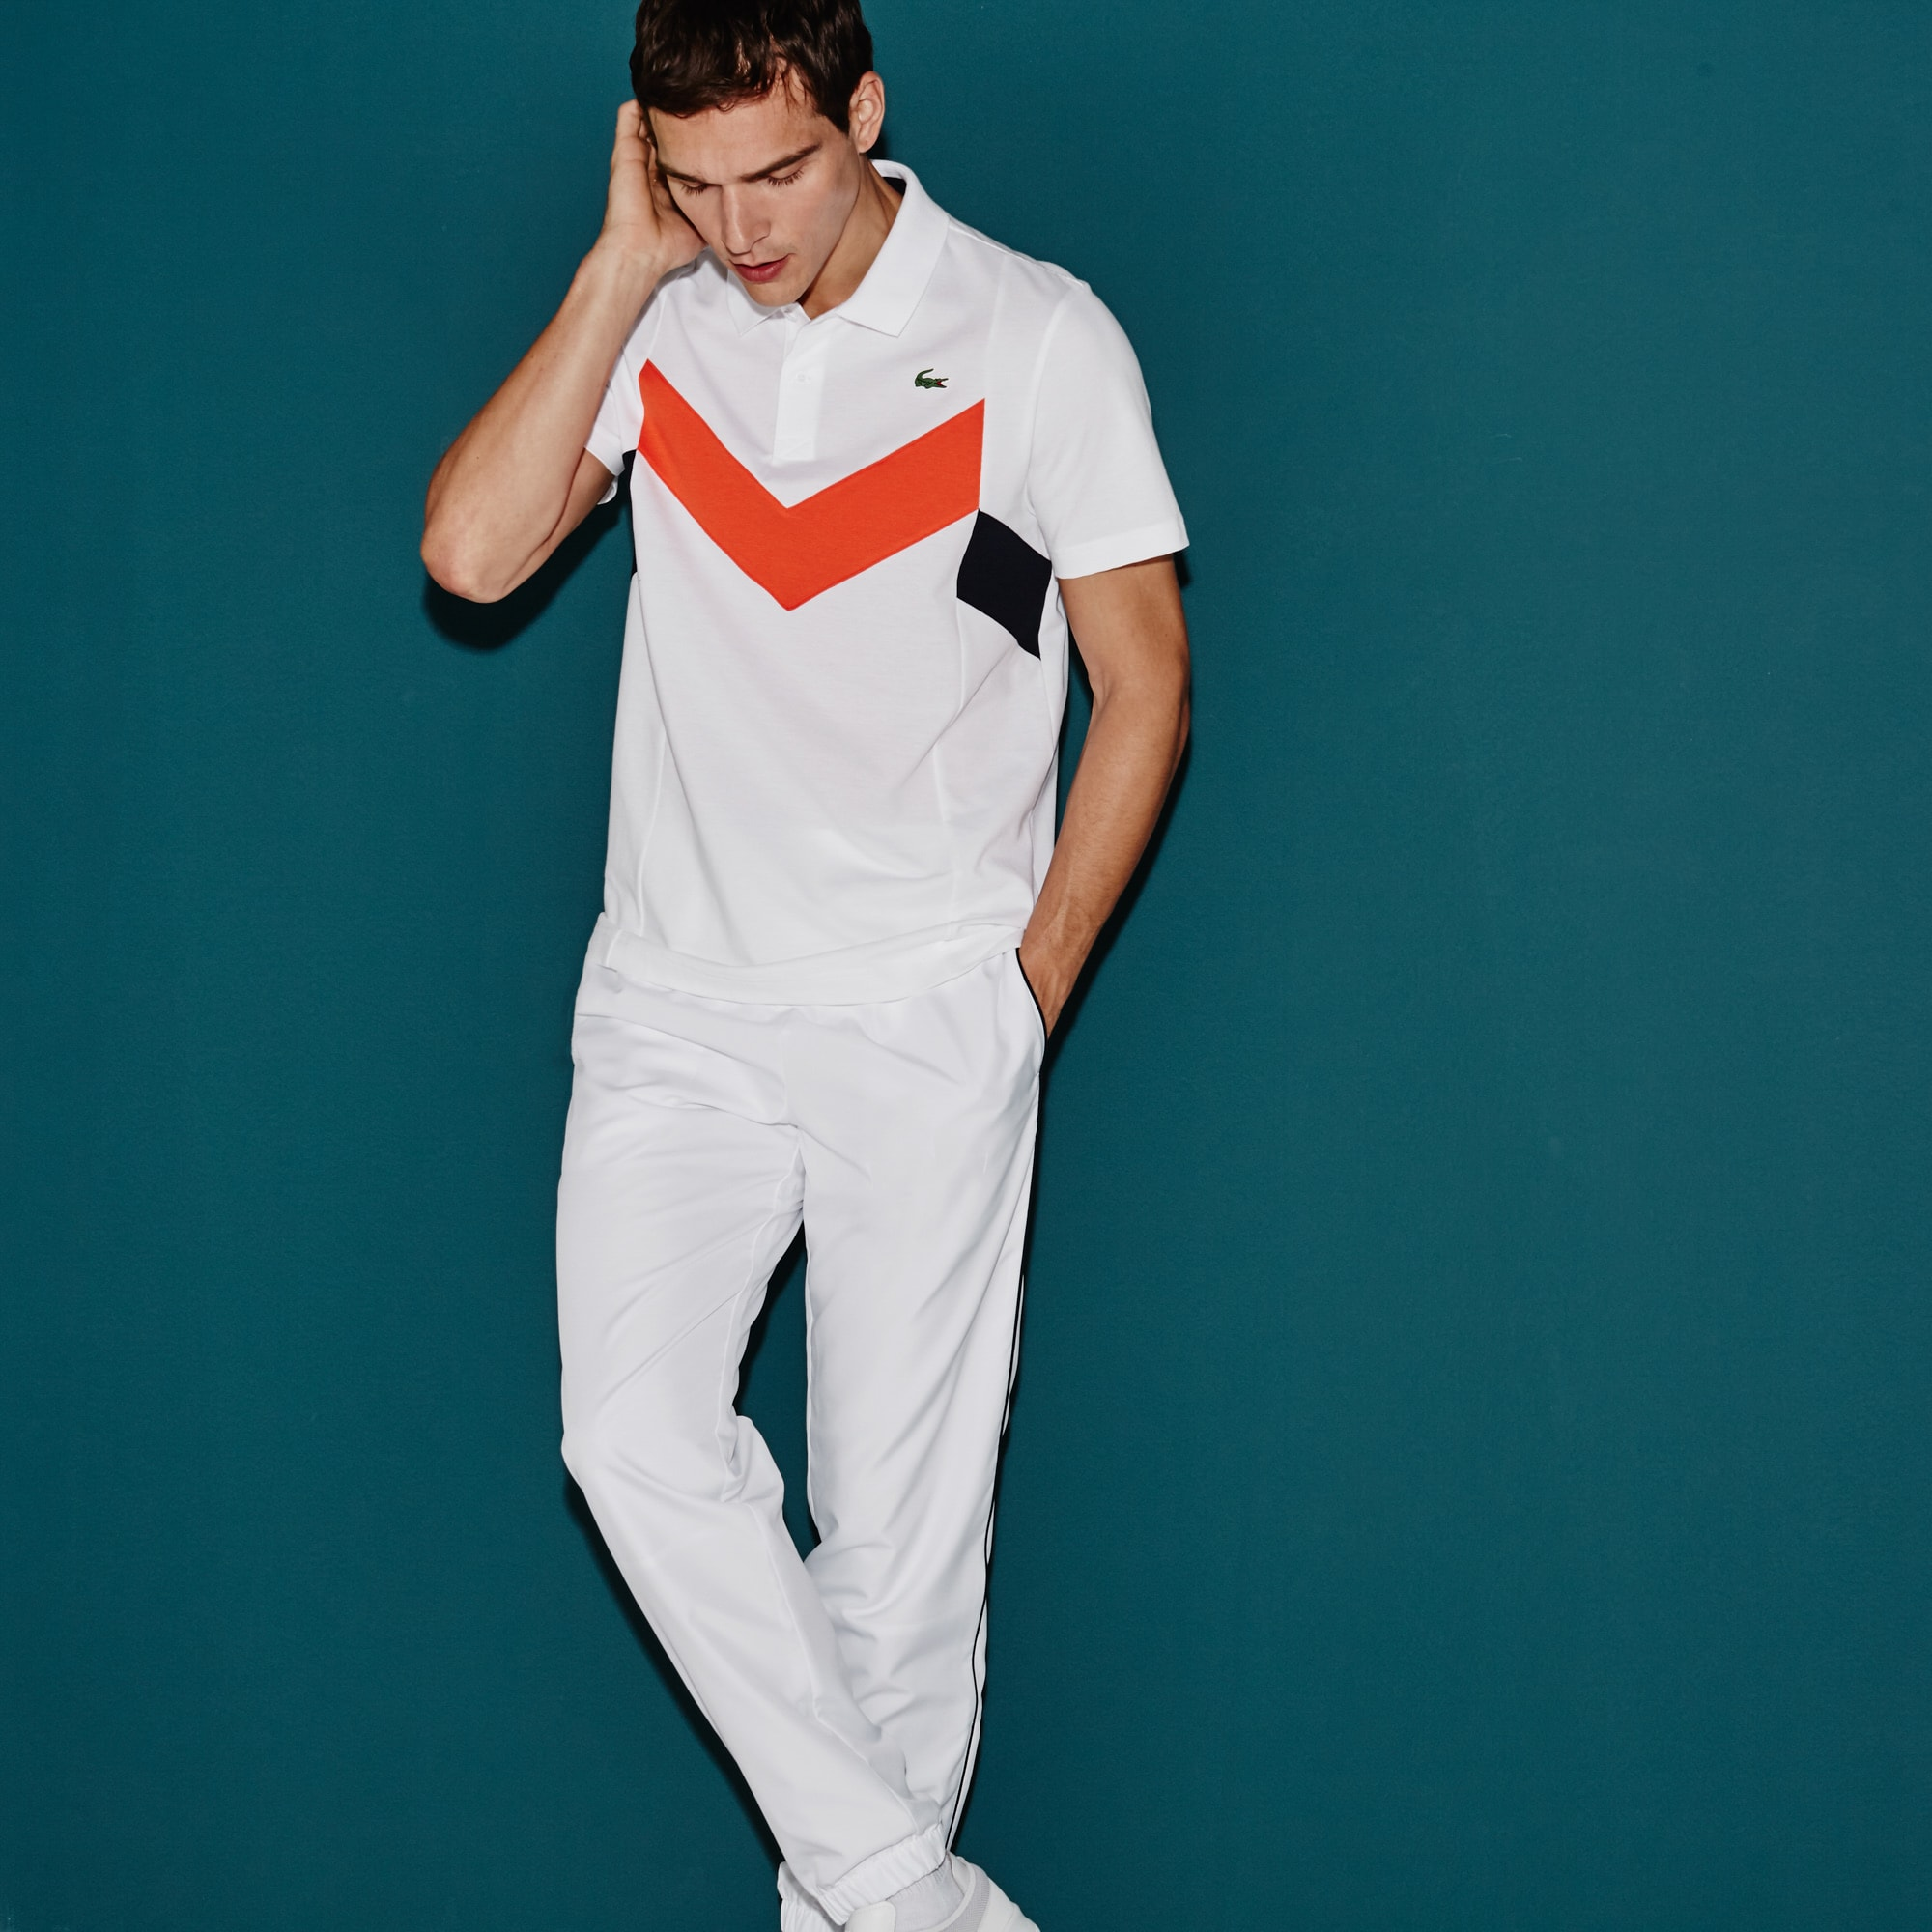 Men's Lacoste SPORT Tennis Ultra-Lightweight Colorblock Knit Polo